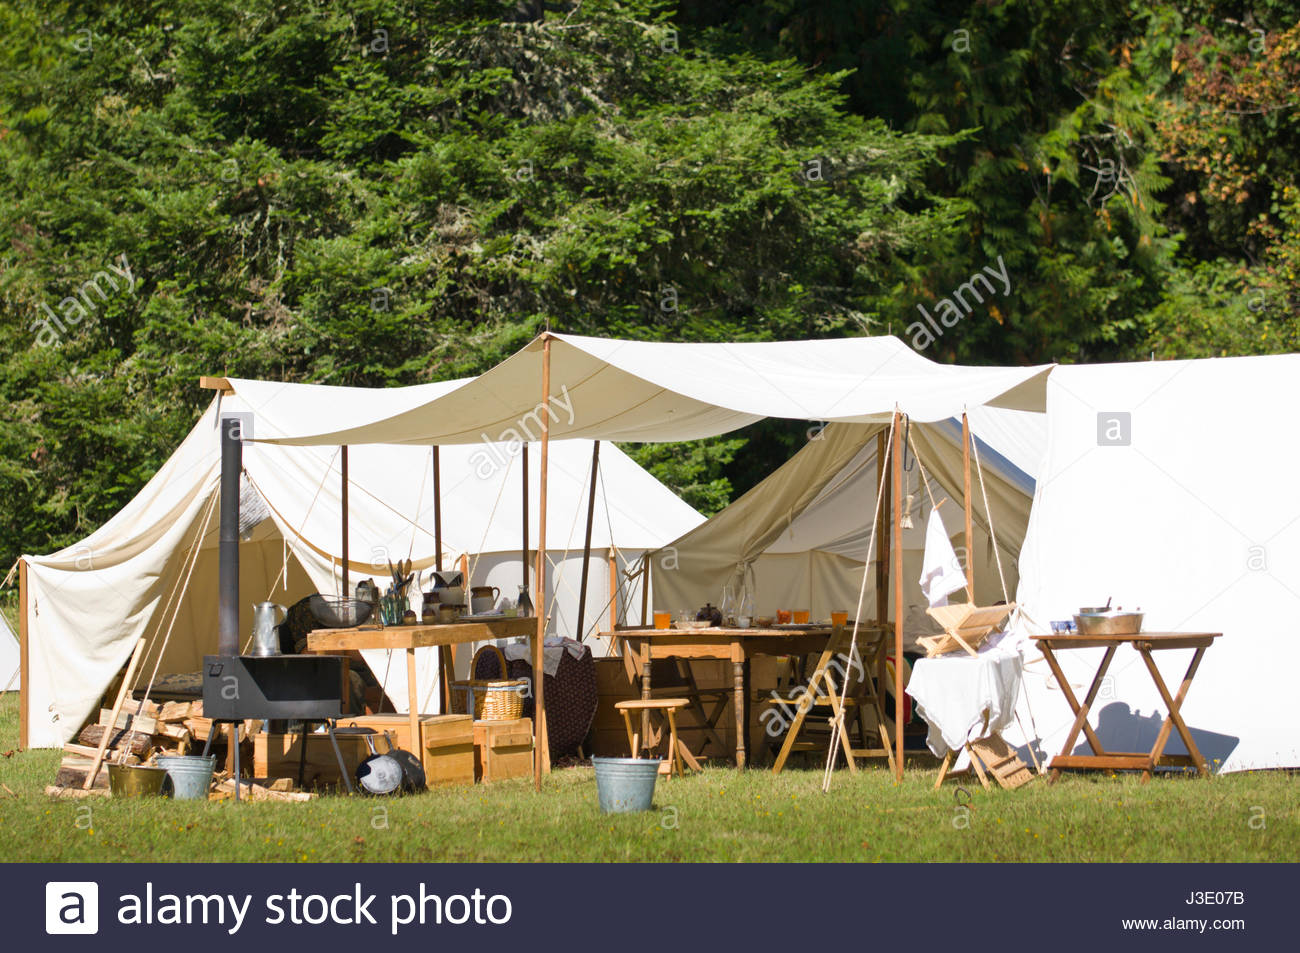 White canvas tents and awning with wood c& furniture and supplies at Civil War Reenactment Milo McIver State Park Estacada Clackamas County Oreg & White canvas tents and awning with wood camp furniture and ...